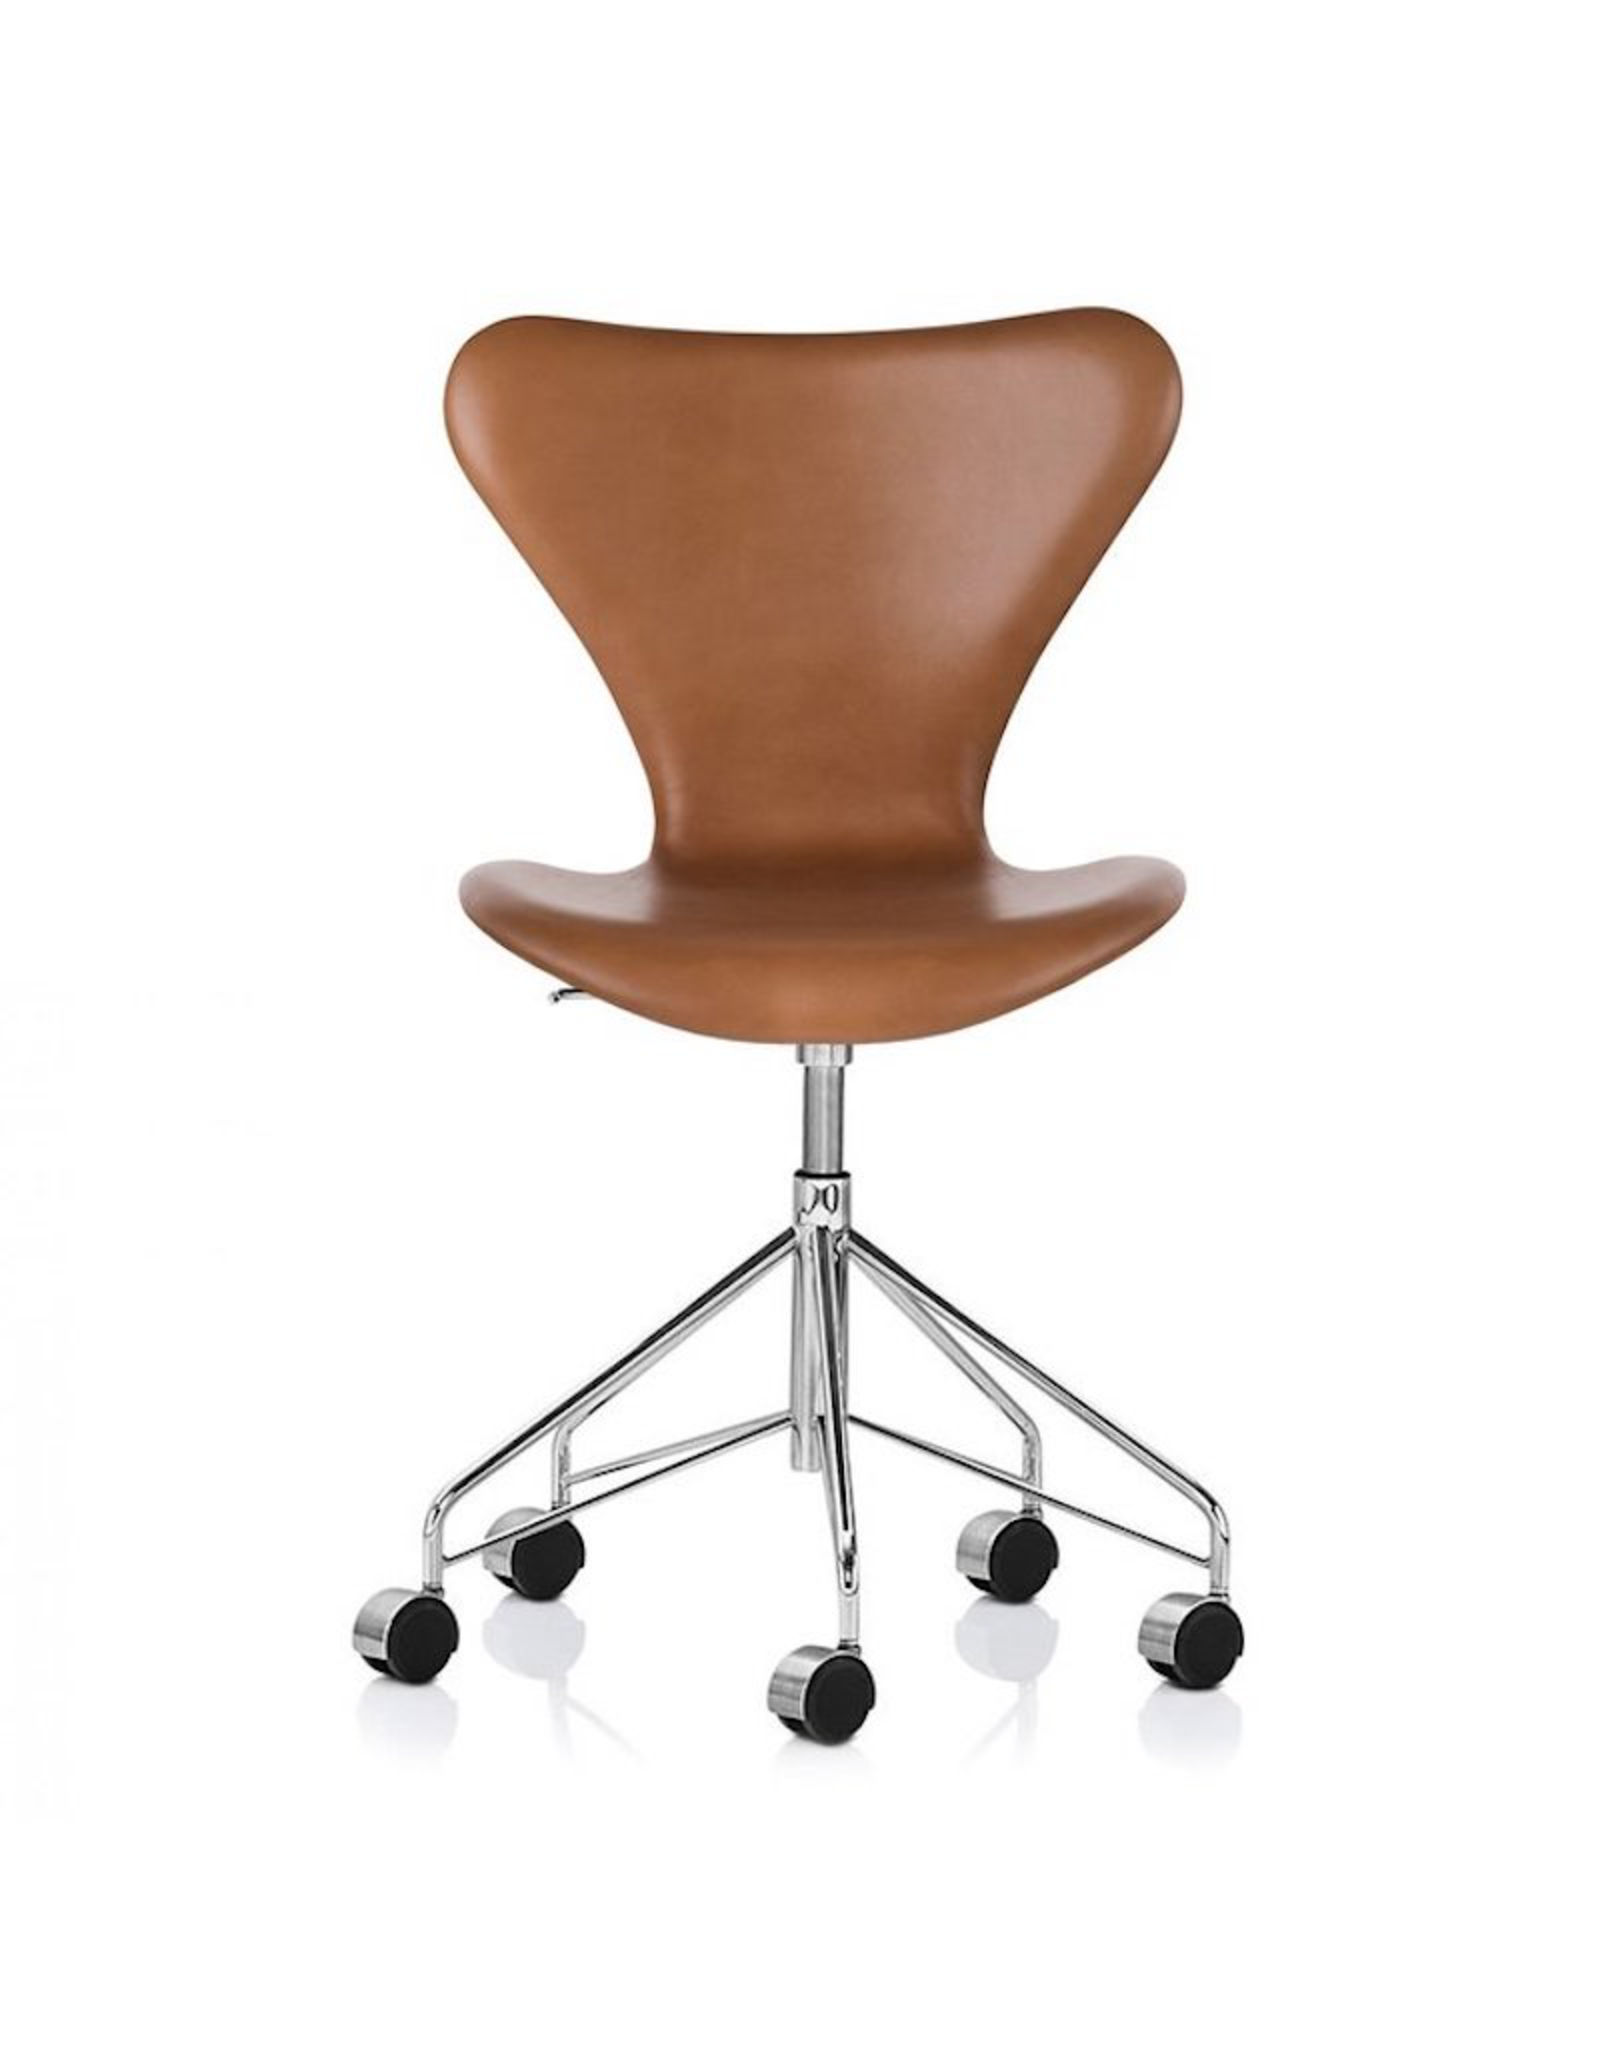 3117 SWIVEL CHAIR IN WILD WALNUT LEATHER & ELM